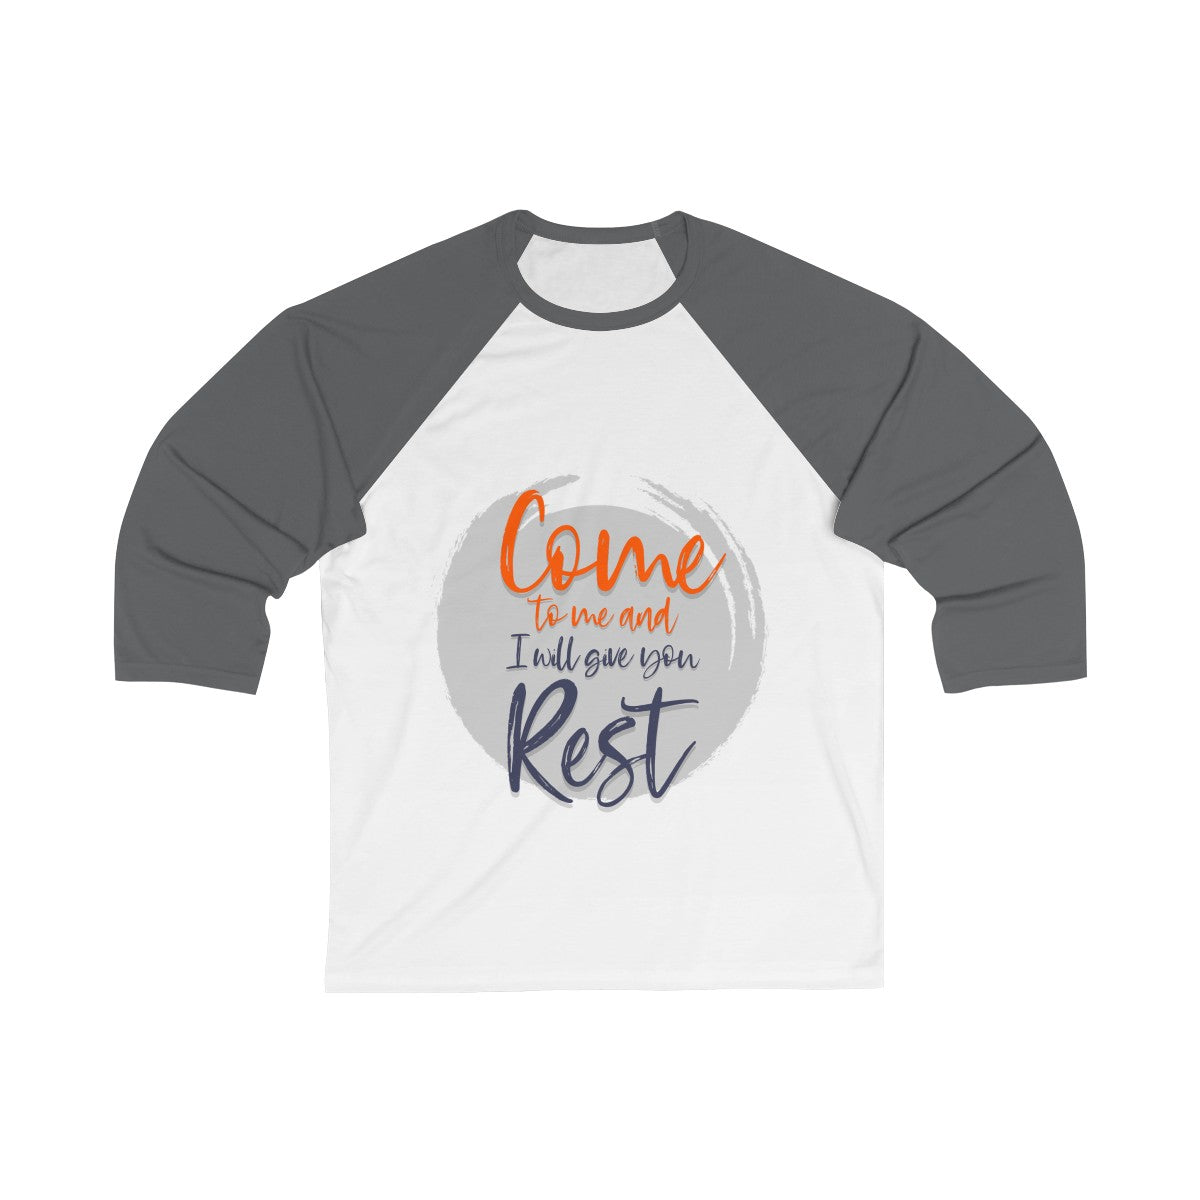 Come to me and I will give you Rest Unisex 3/4 Sleeve Baseball Tee